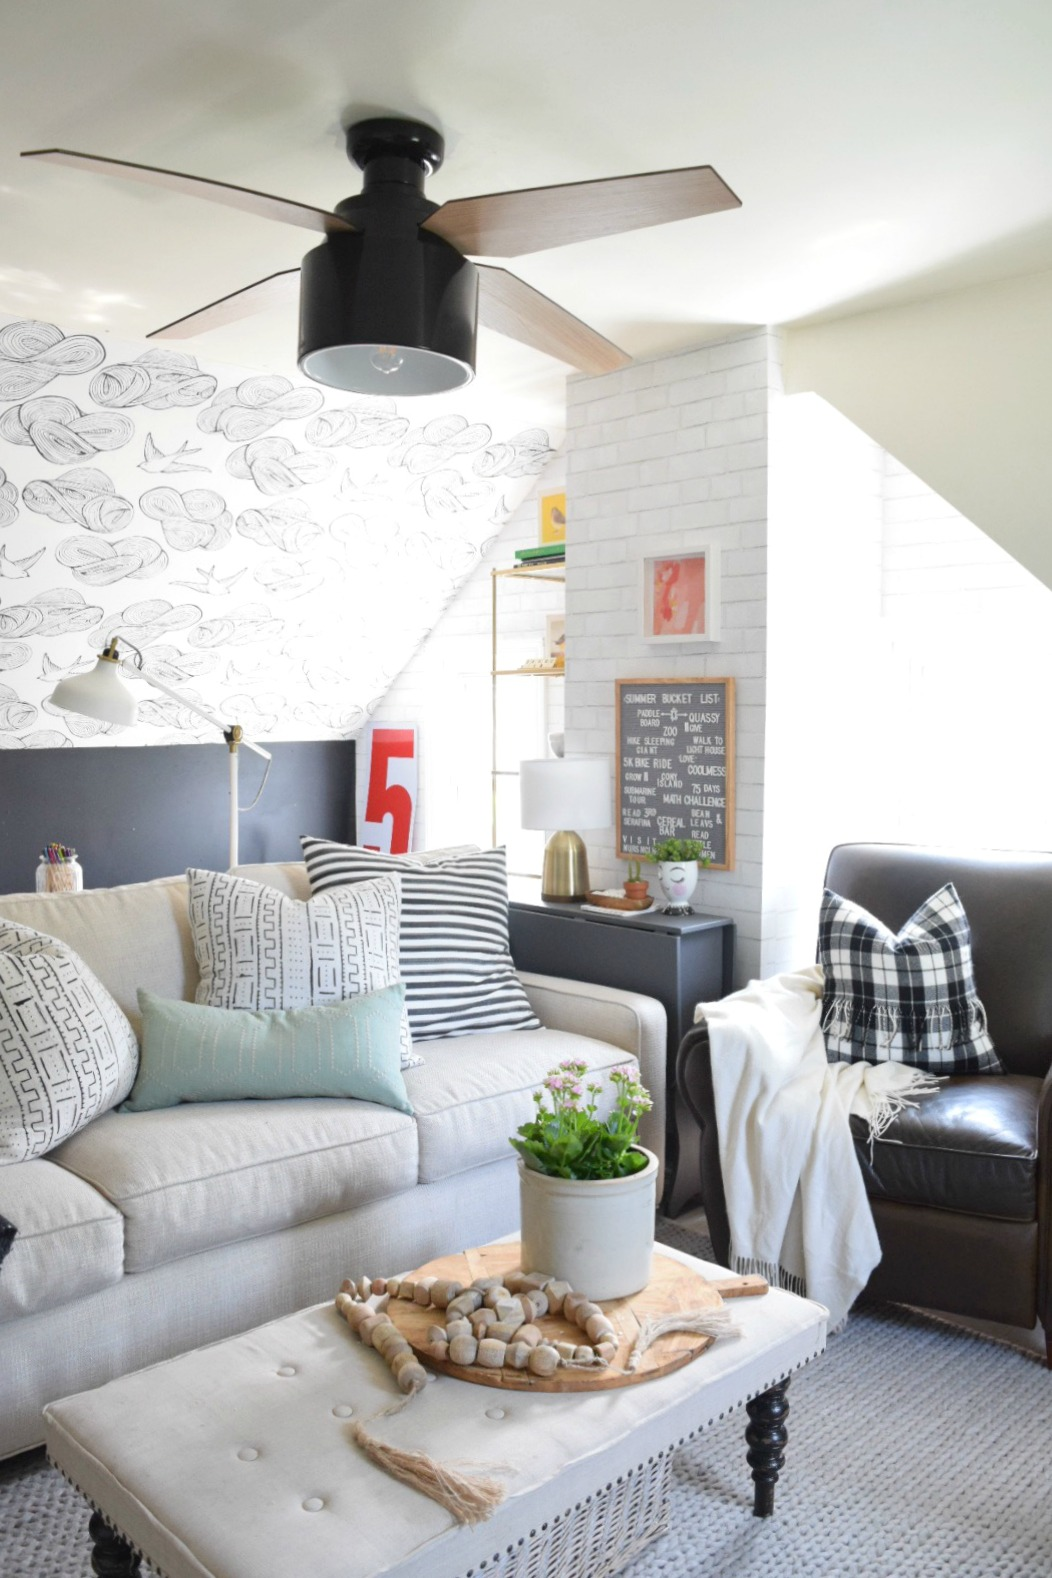 3 Home Decor Trends For Spring Brittany Stager: Summer Home Decor- 2017 Master Bedroom And Summer Bucket